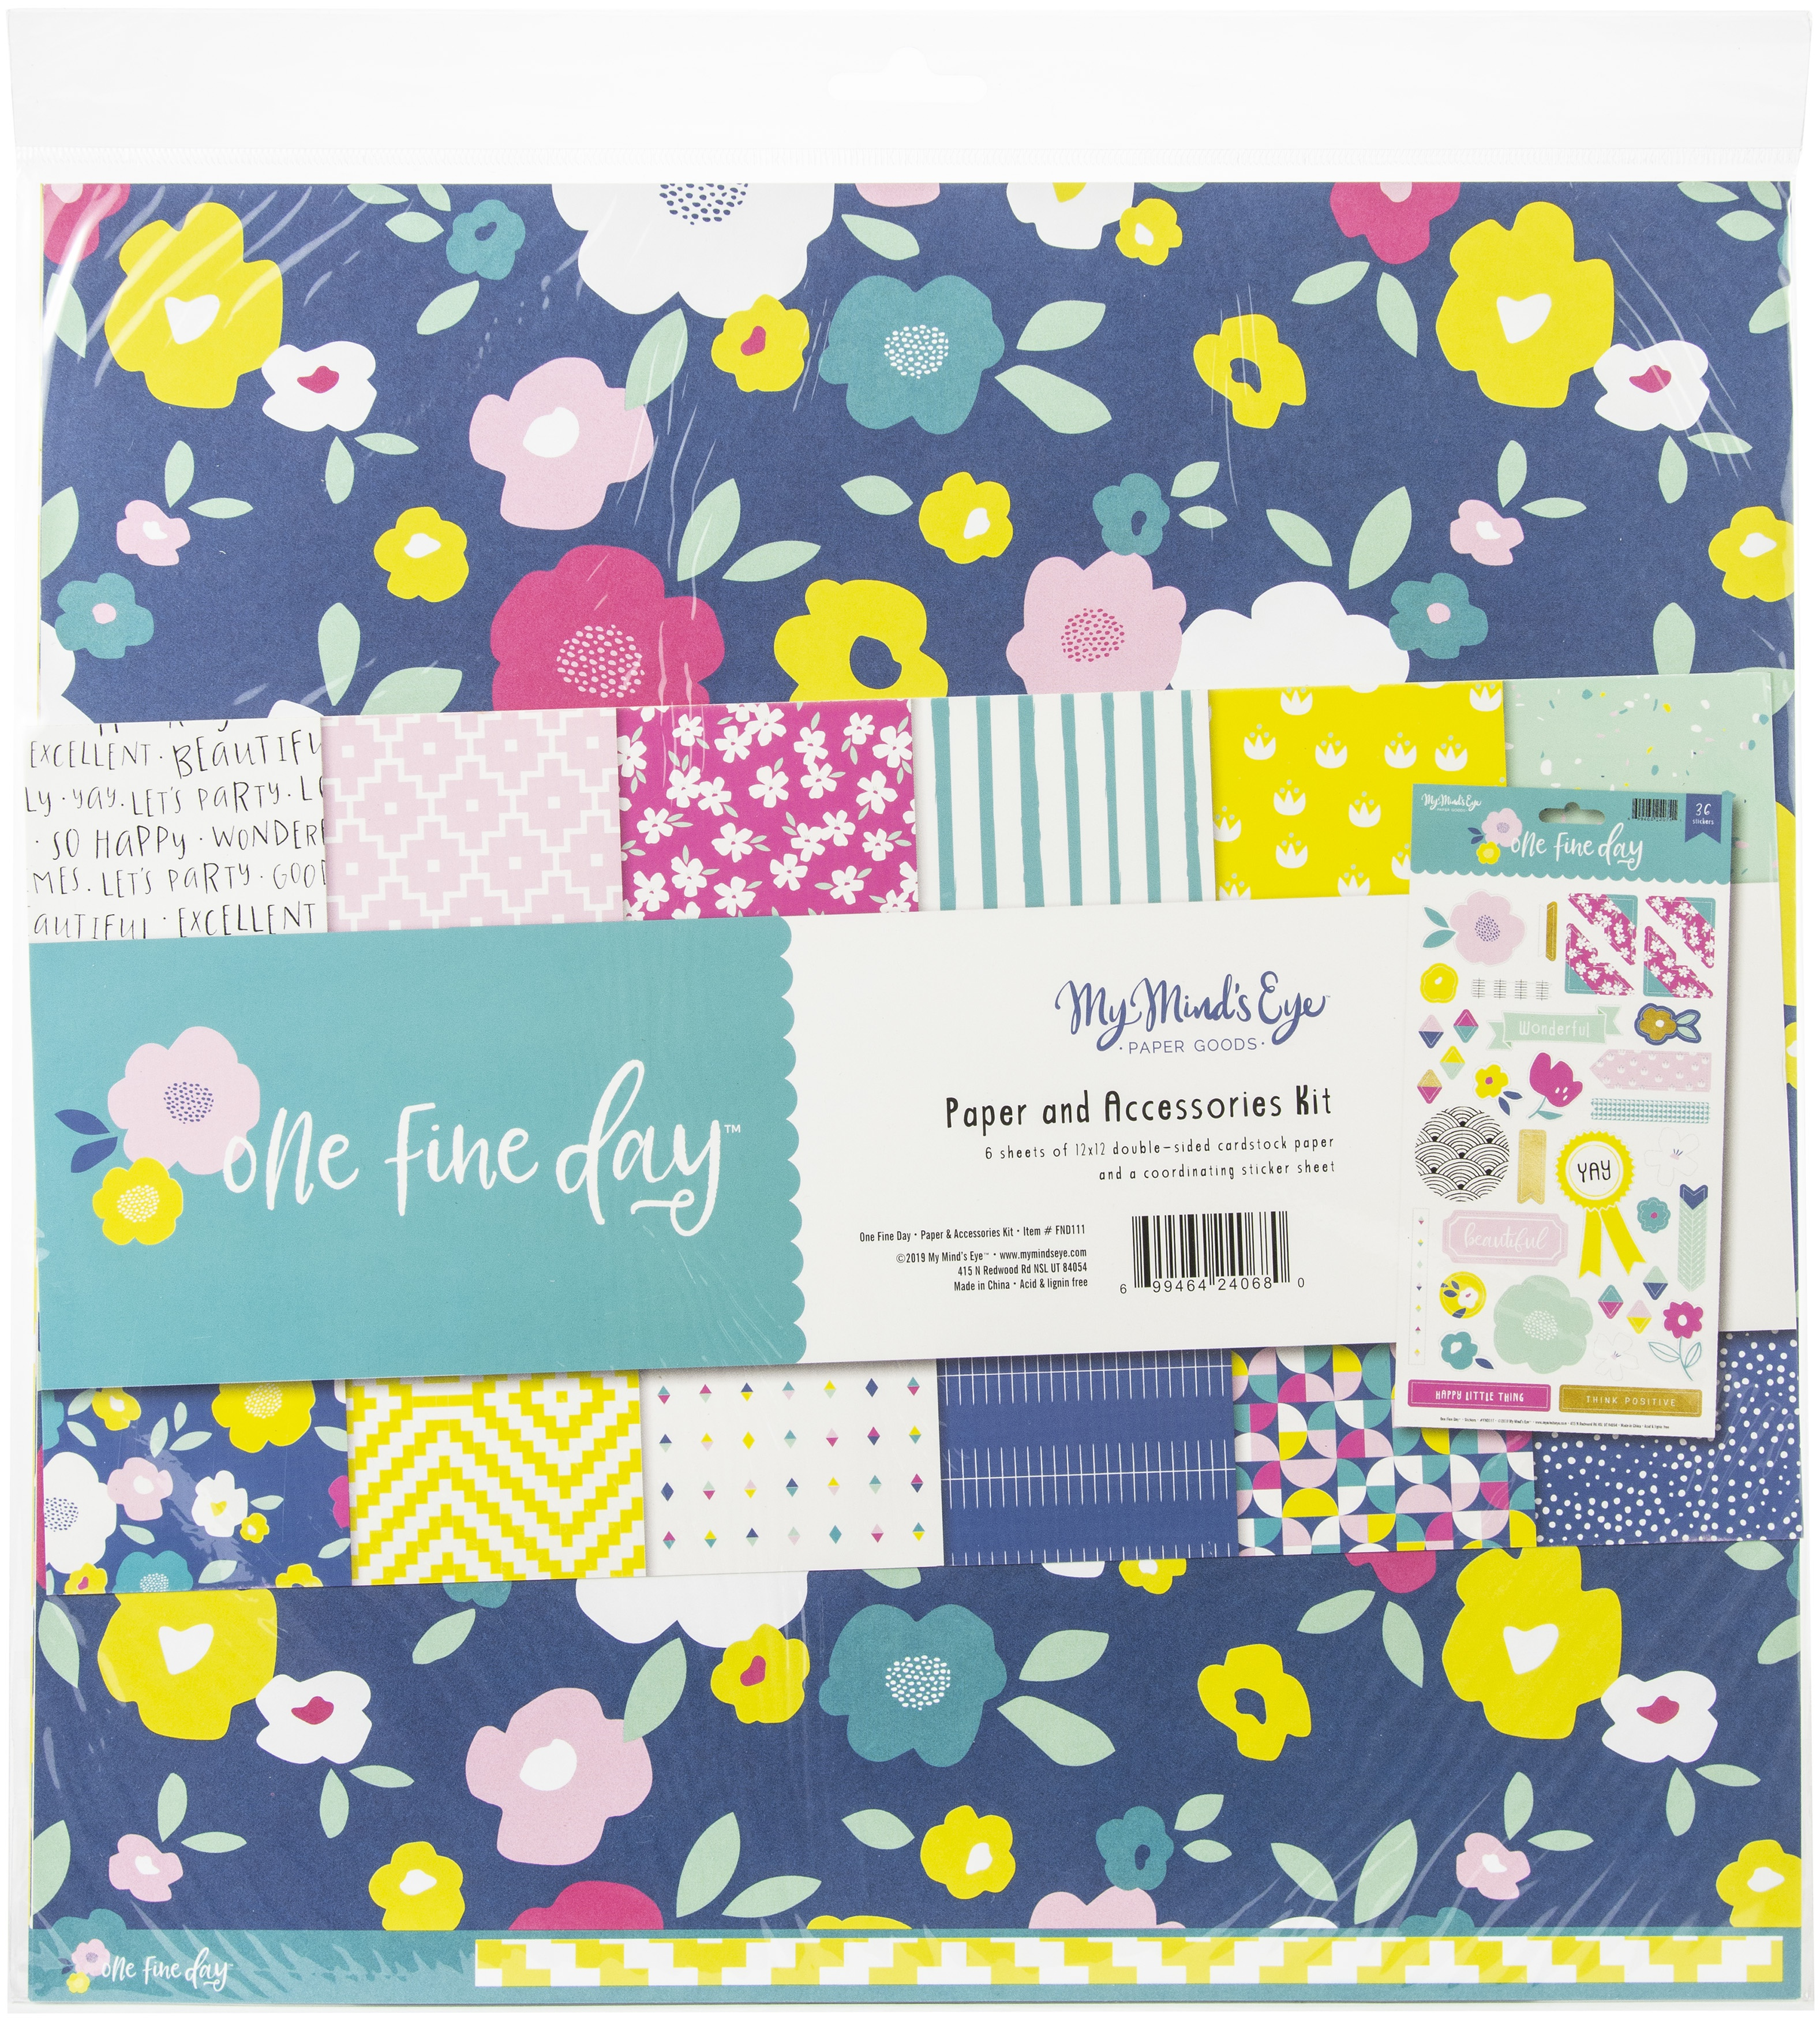 ^My Mind's Eye One Fine Day - 12x12 Paper & Accessories Kit